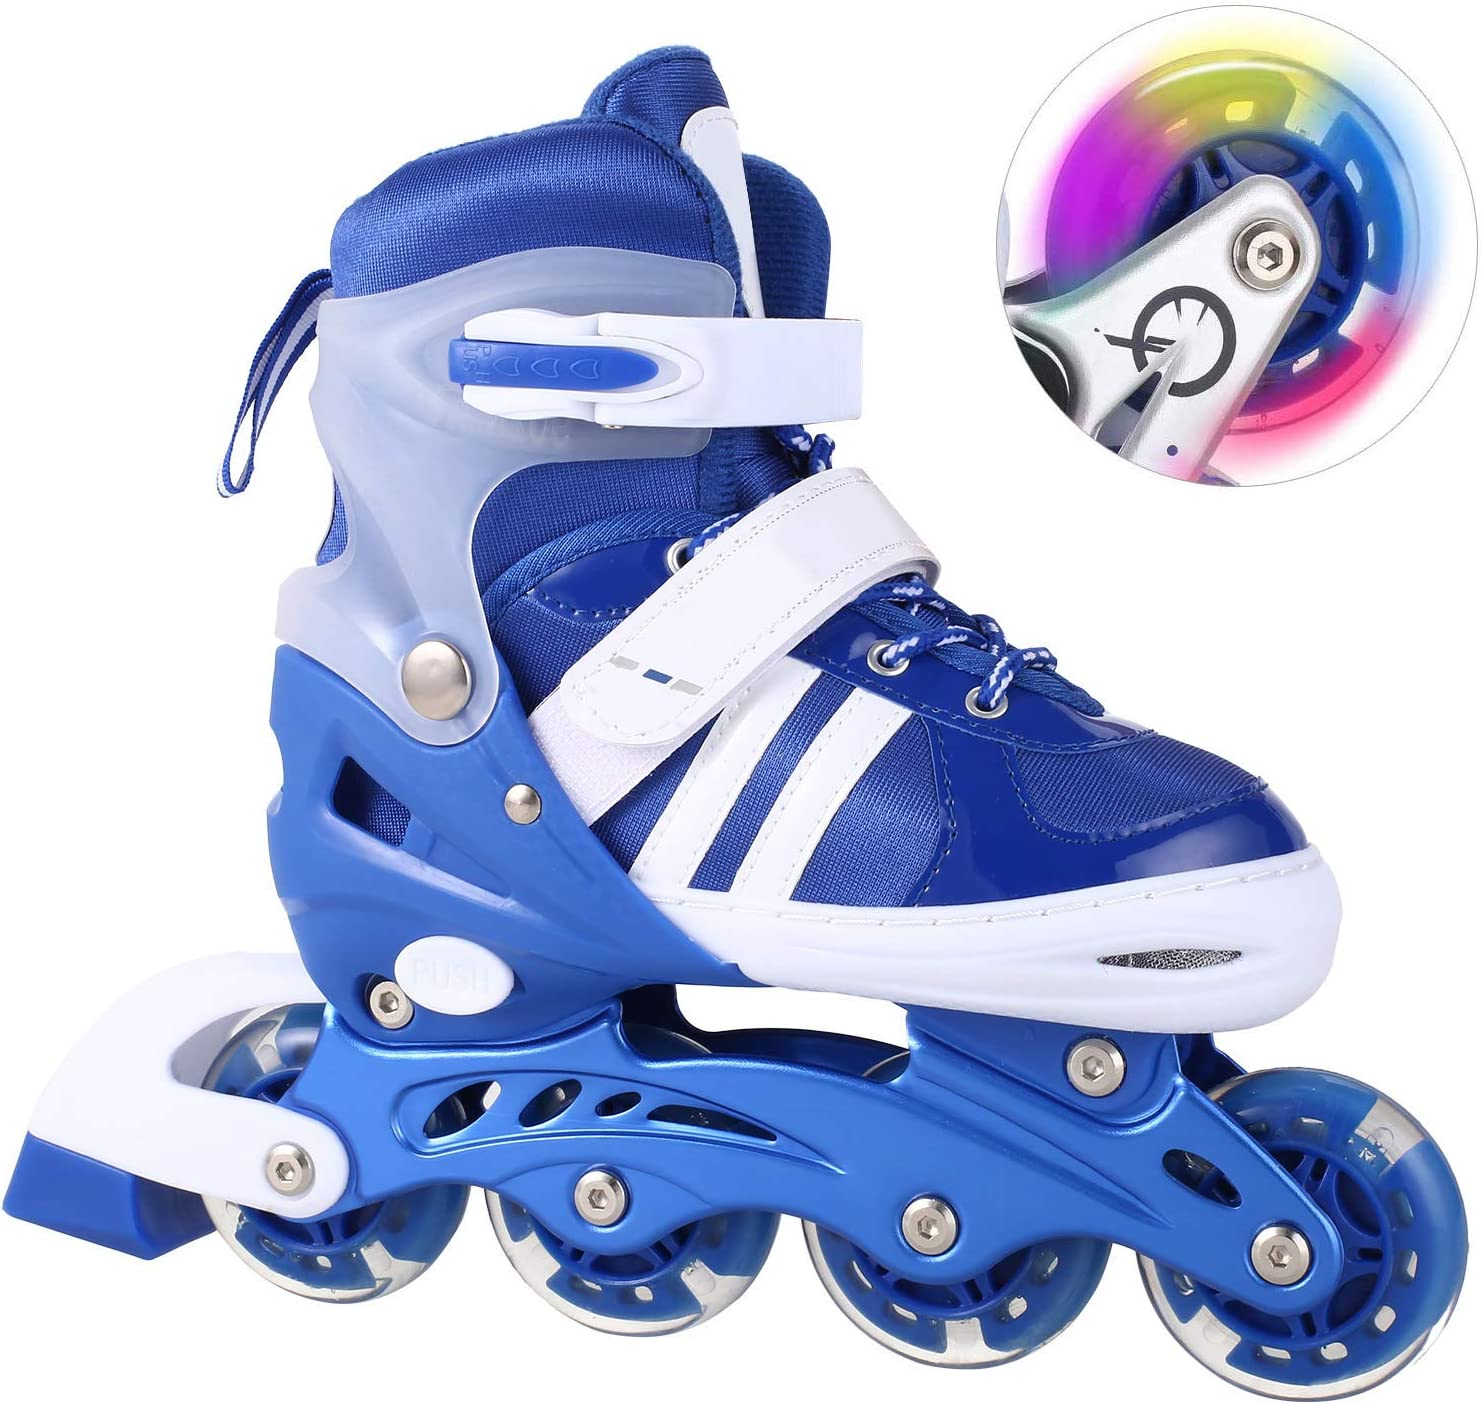 WeSkate Inline Skates for Kids Teen Women with Light Up Wheels, Illuminating Roller Skates for Beginner Outdoor Fitness